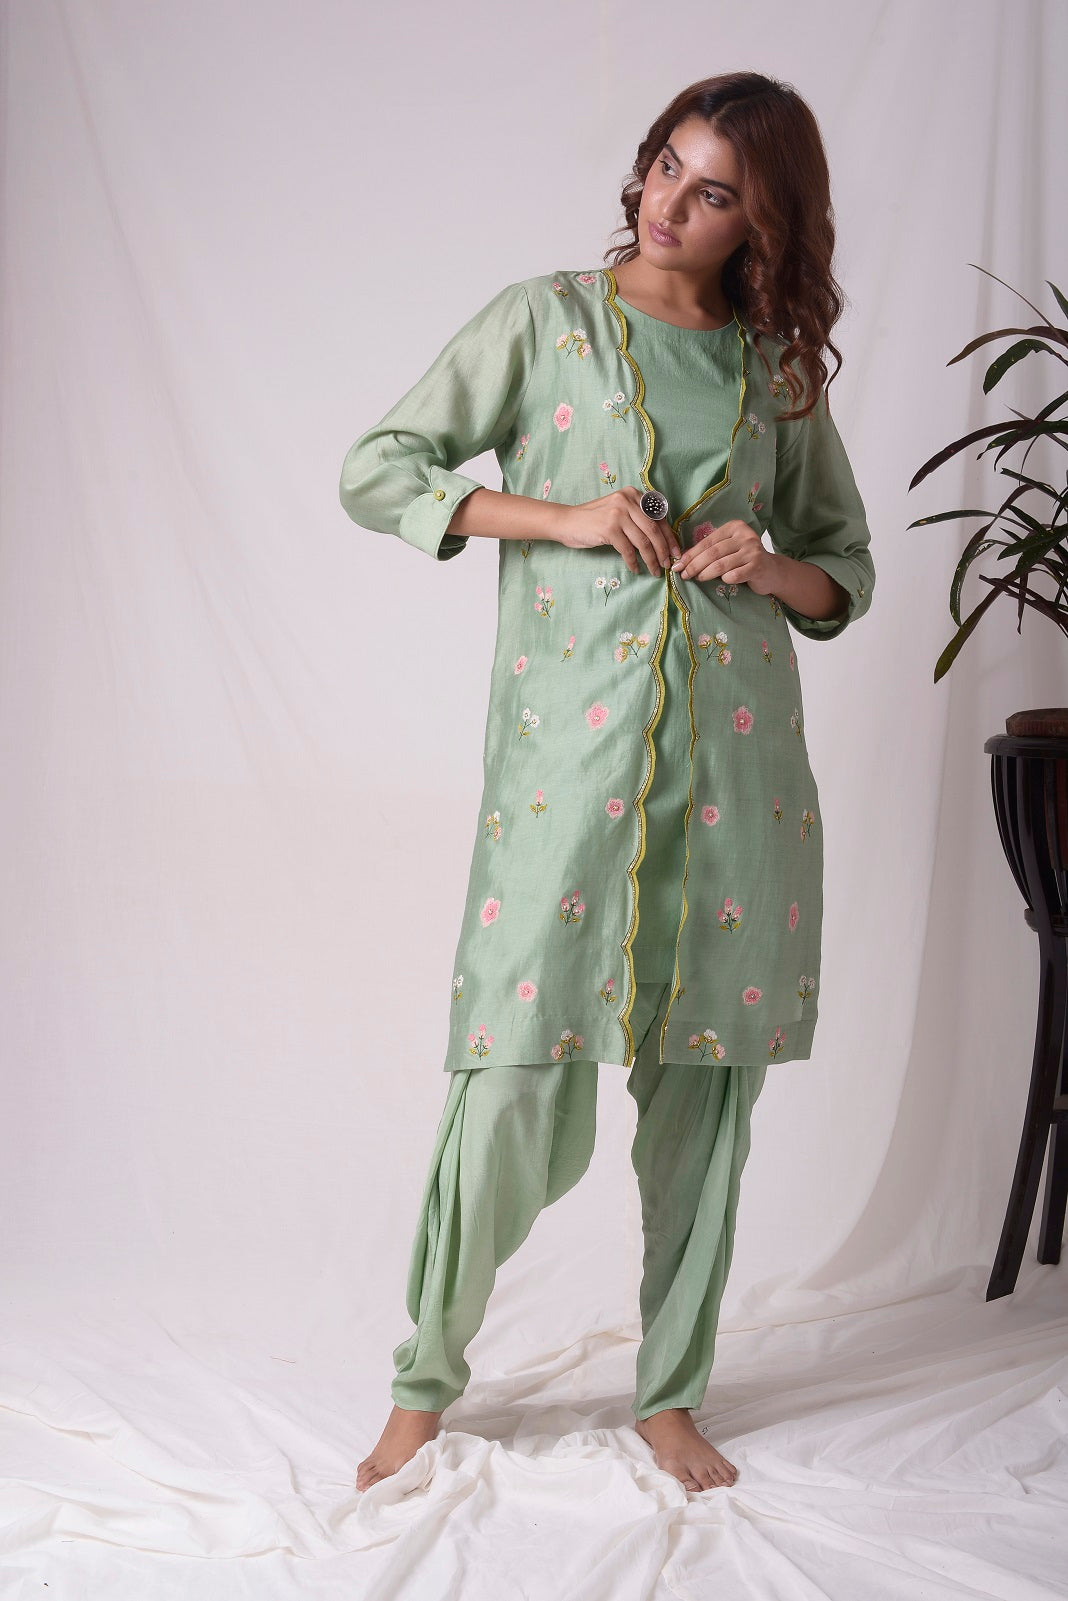 Sage Green Chanderi Suit With Jacket And Dhoti Online in USA-full view-4